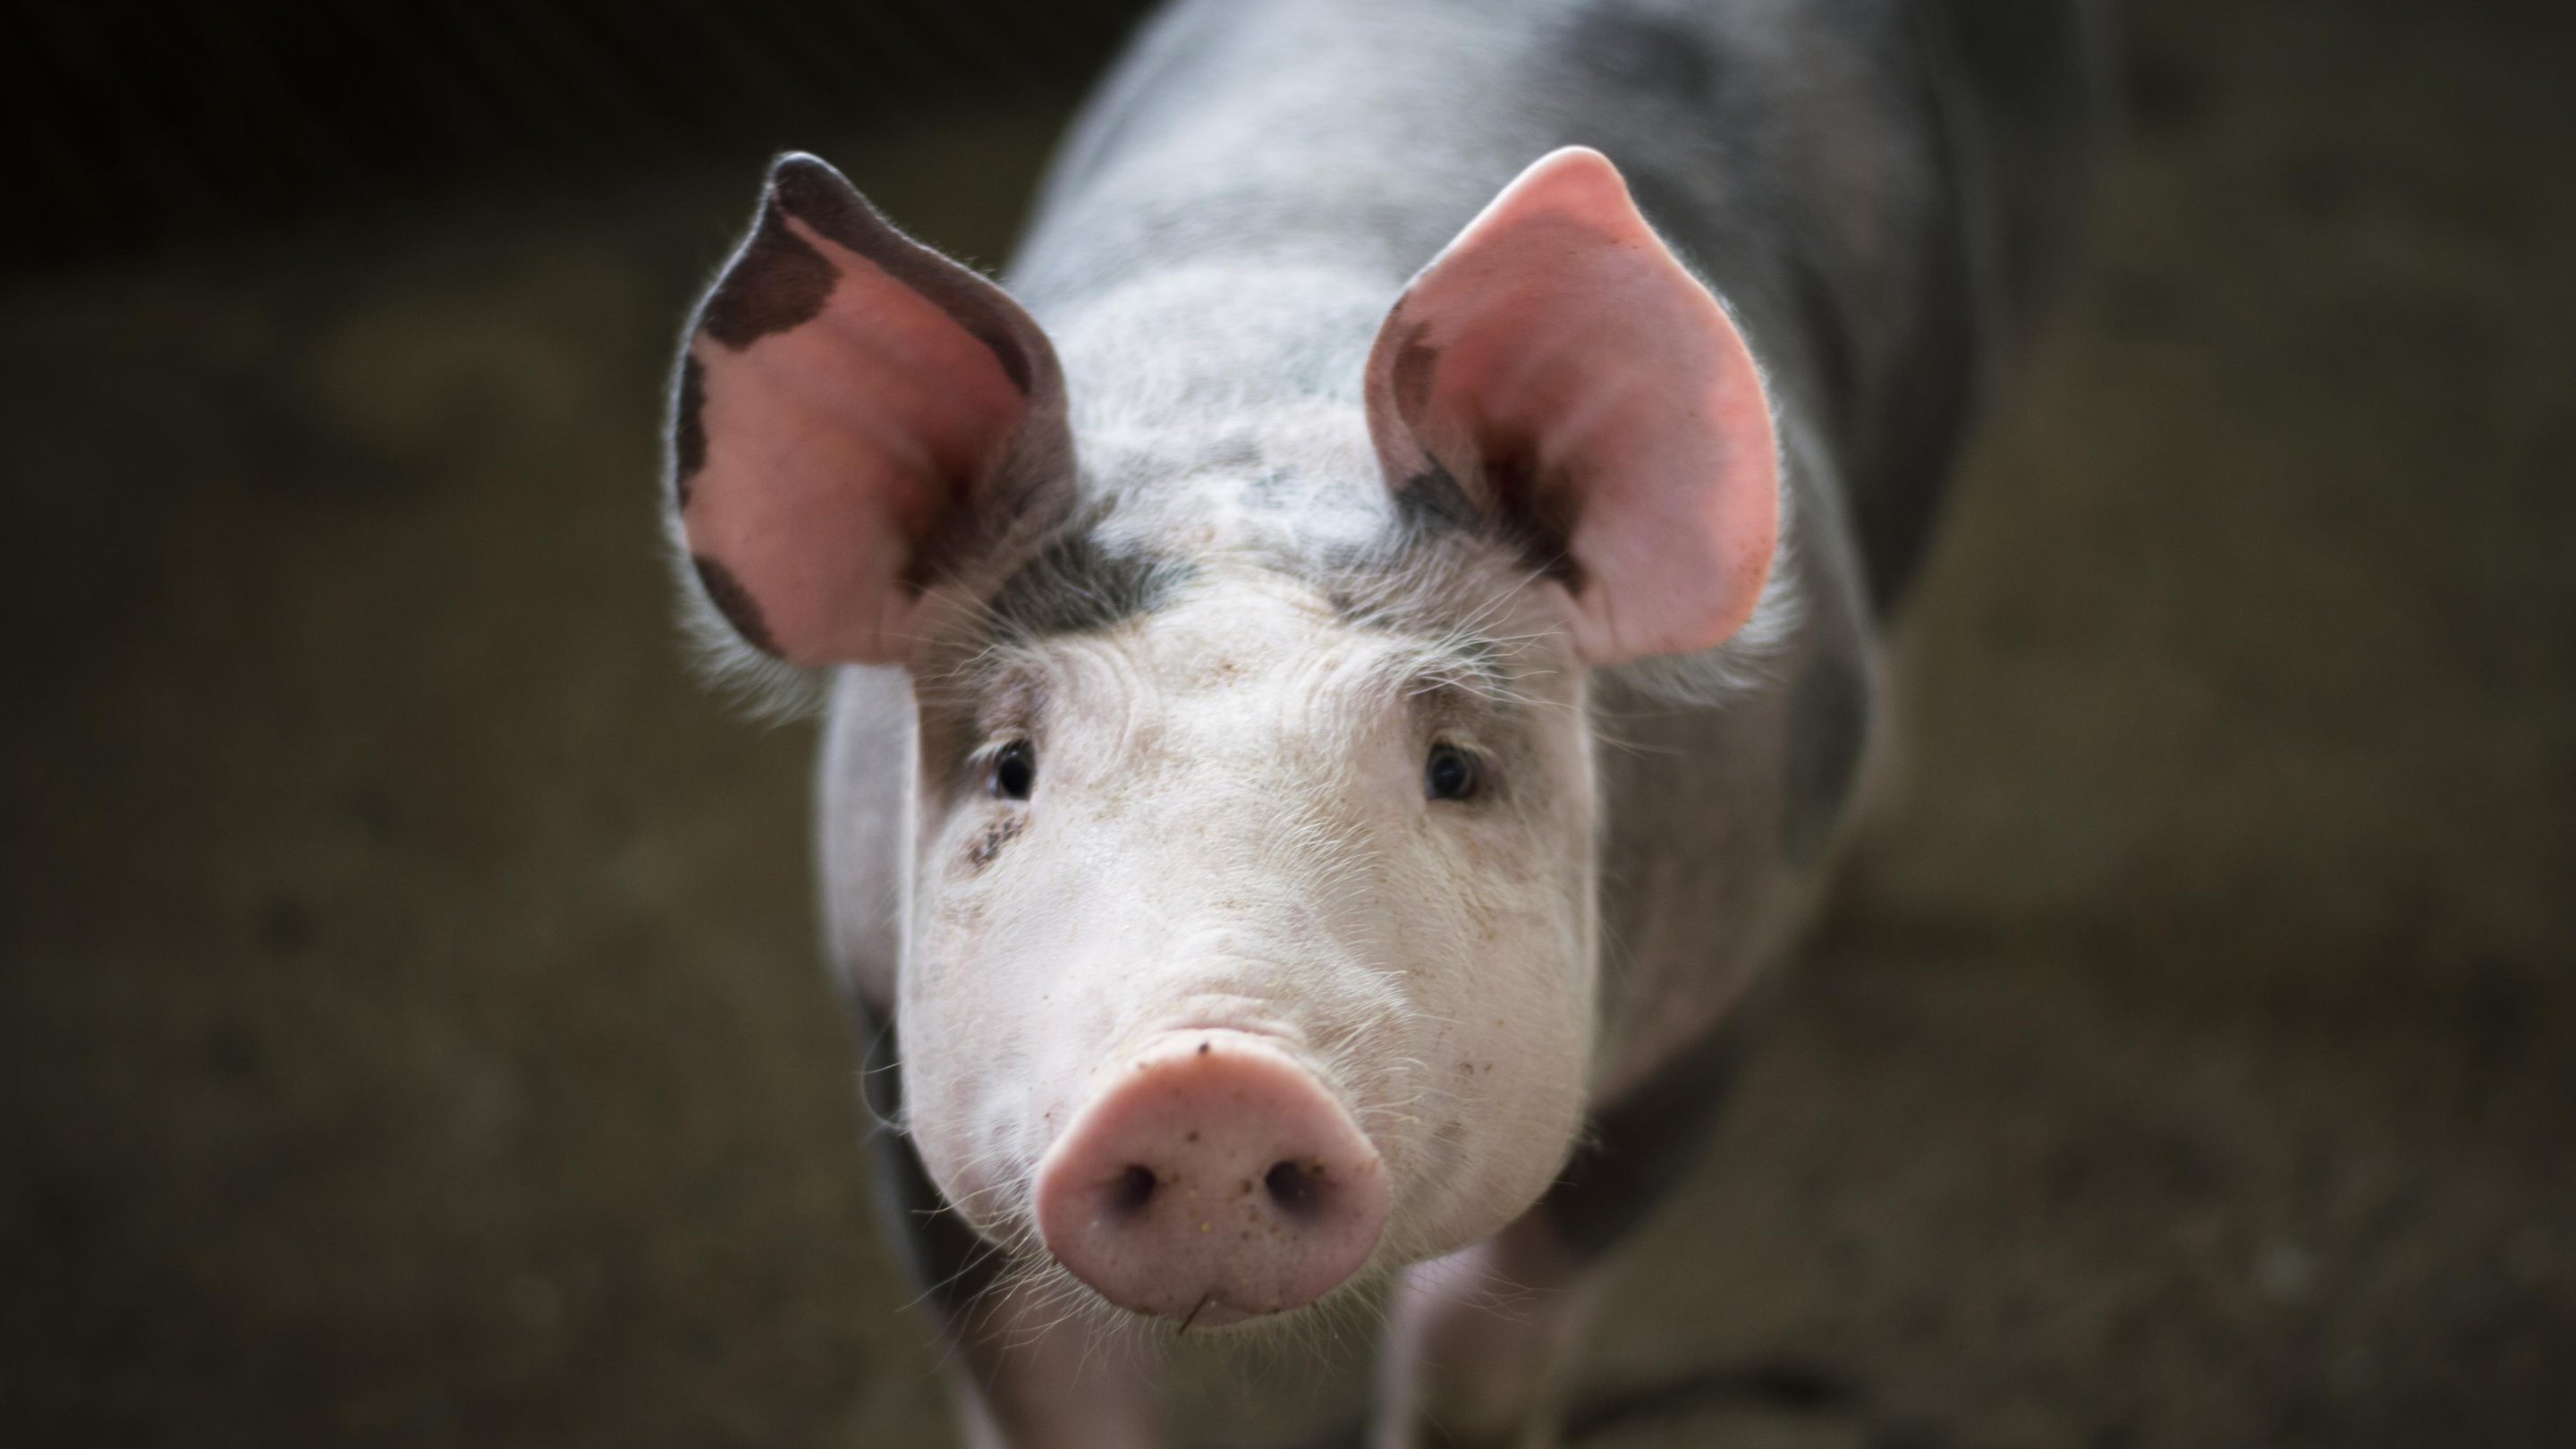 A pig's face is displayed close up